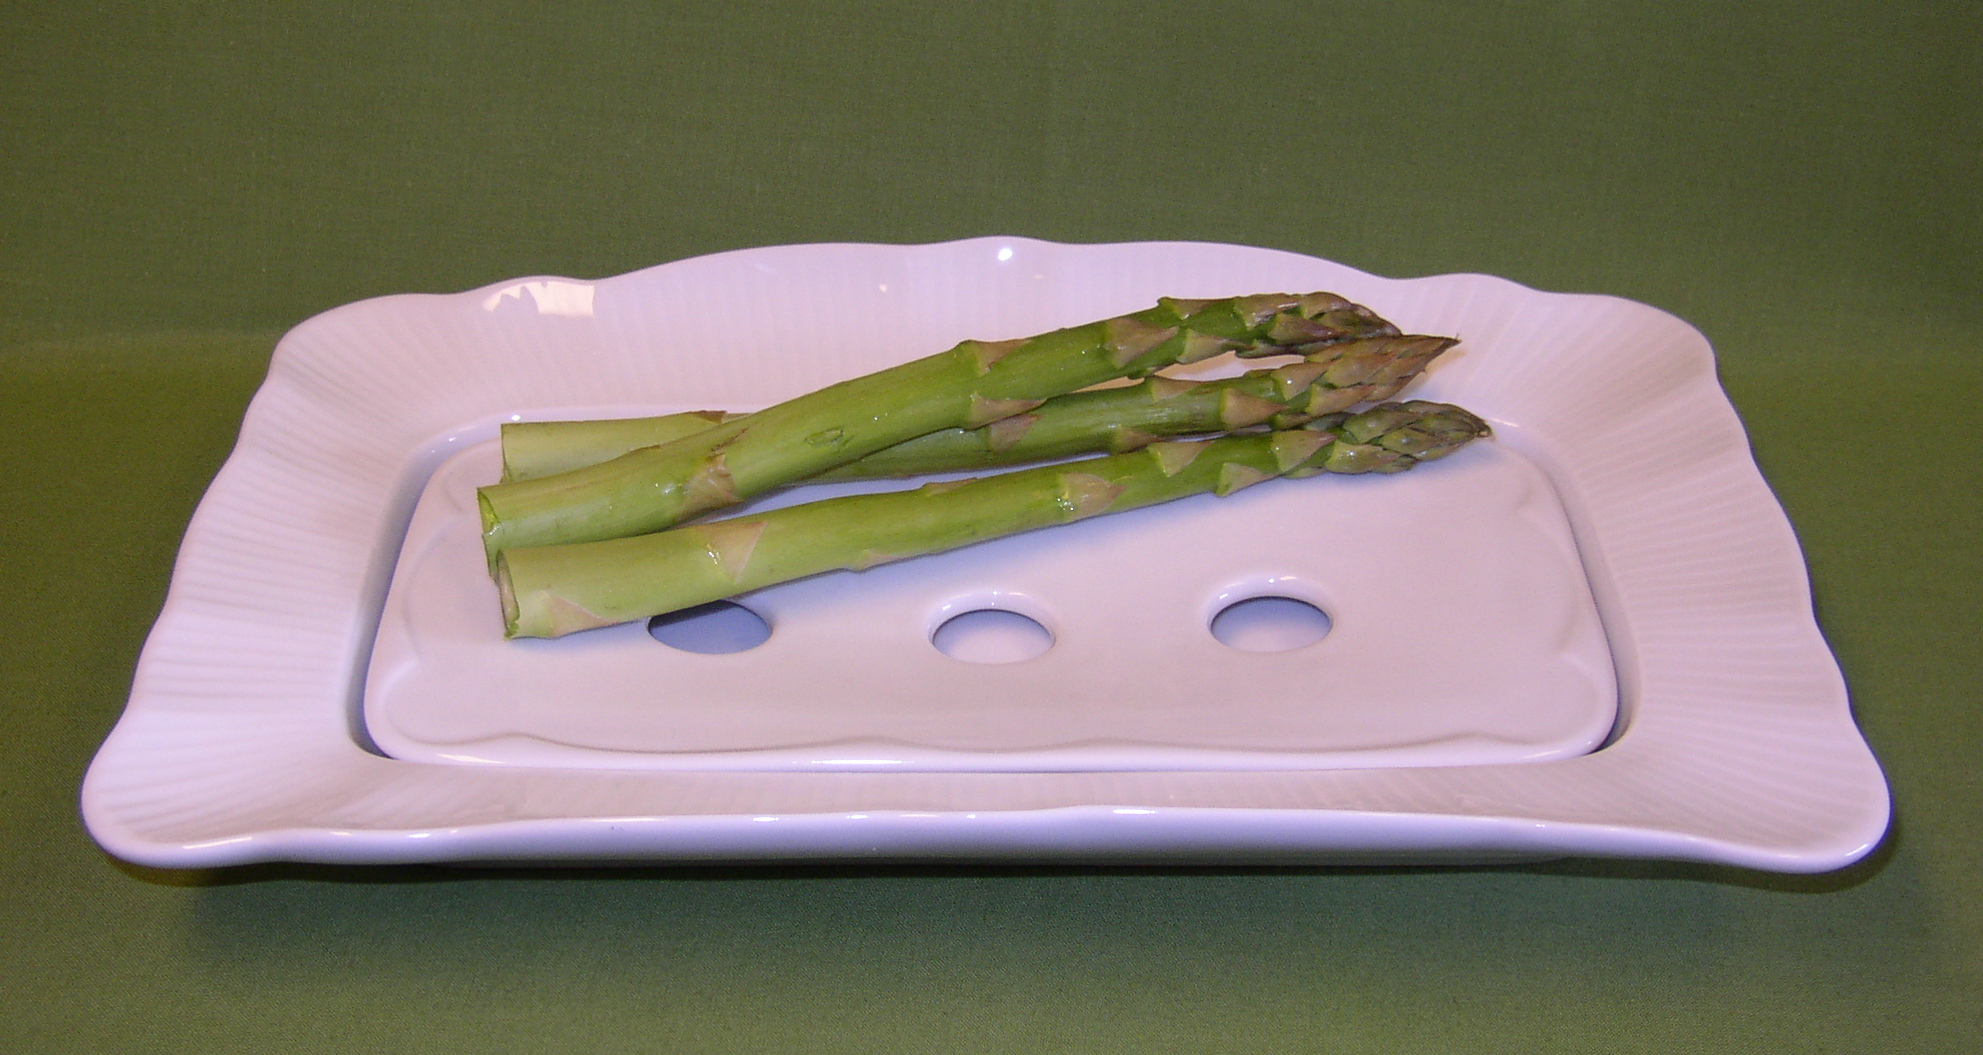 French porcelain asparagus serving plate- liquid drains to dish below for maintaining crispness